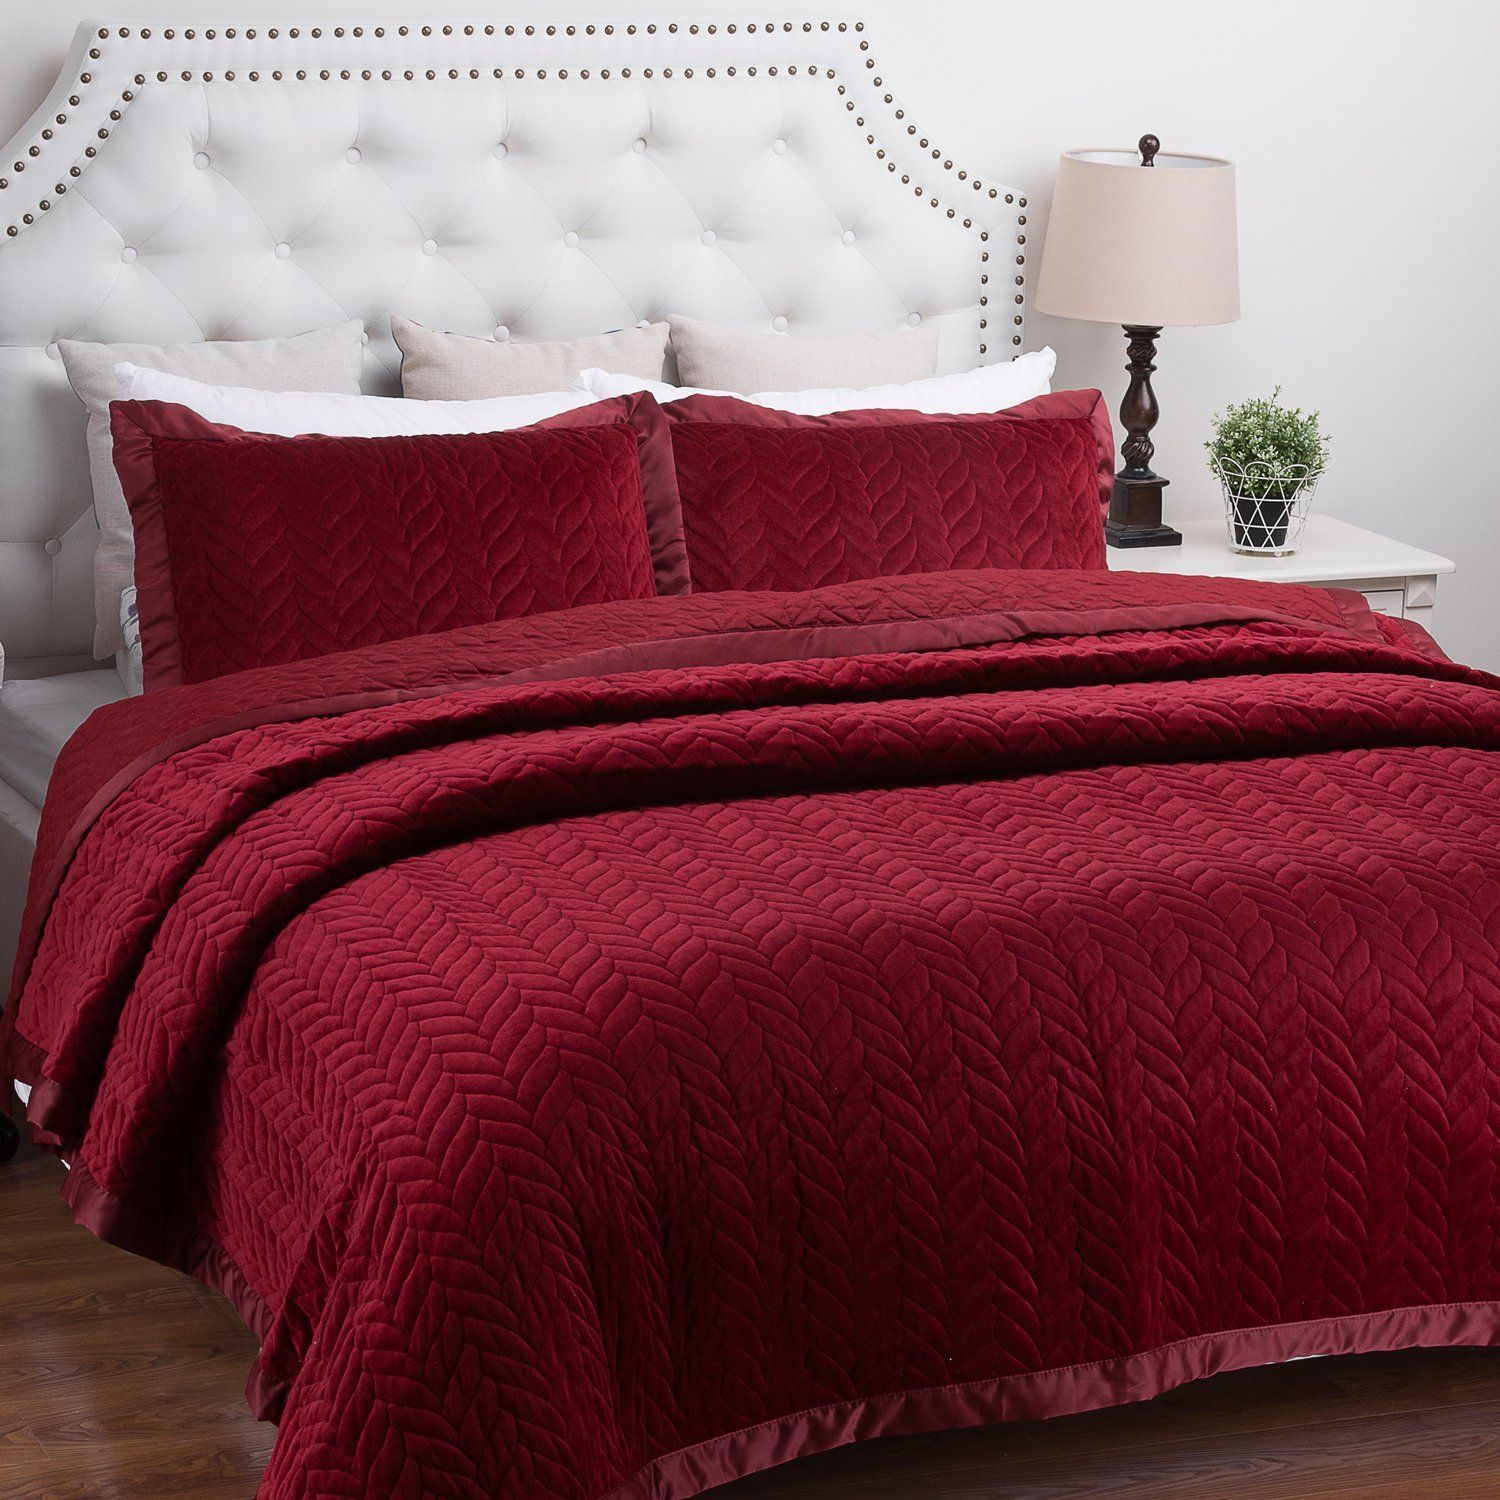 duvets stag red kohls christmas the sets of bedspreads spread check quilts egg king quilt comforters deer ebay blue super lauren covers highland queen size com california and bedroom patchwork duck bedding sized full cover duvet ralph set xmas target in coverlet tartan primark